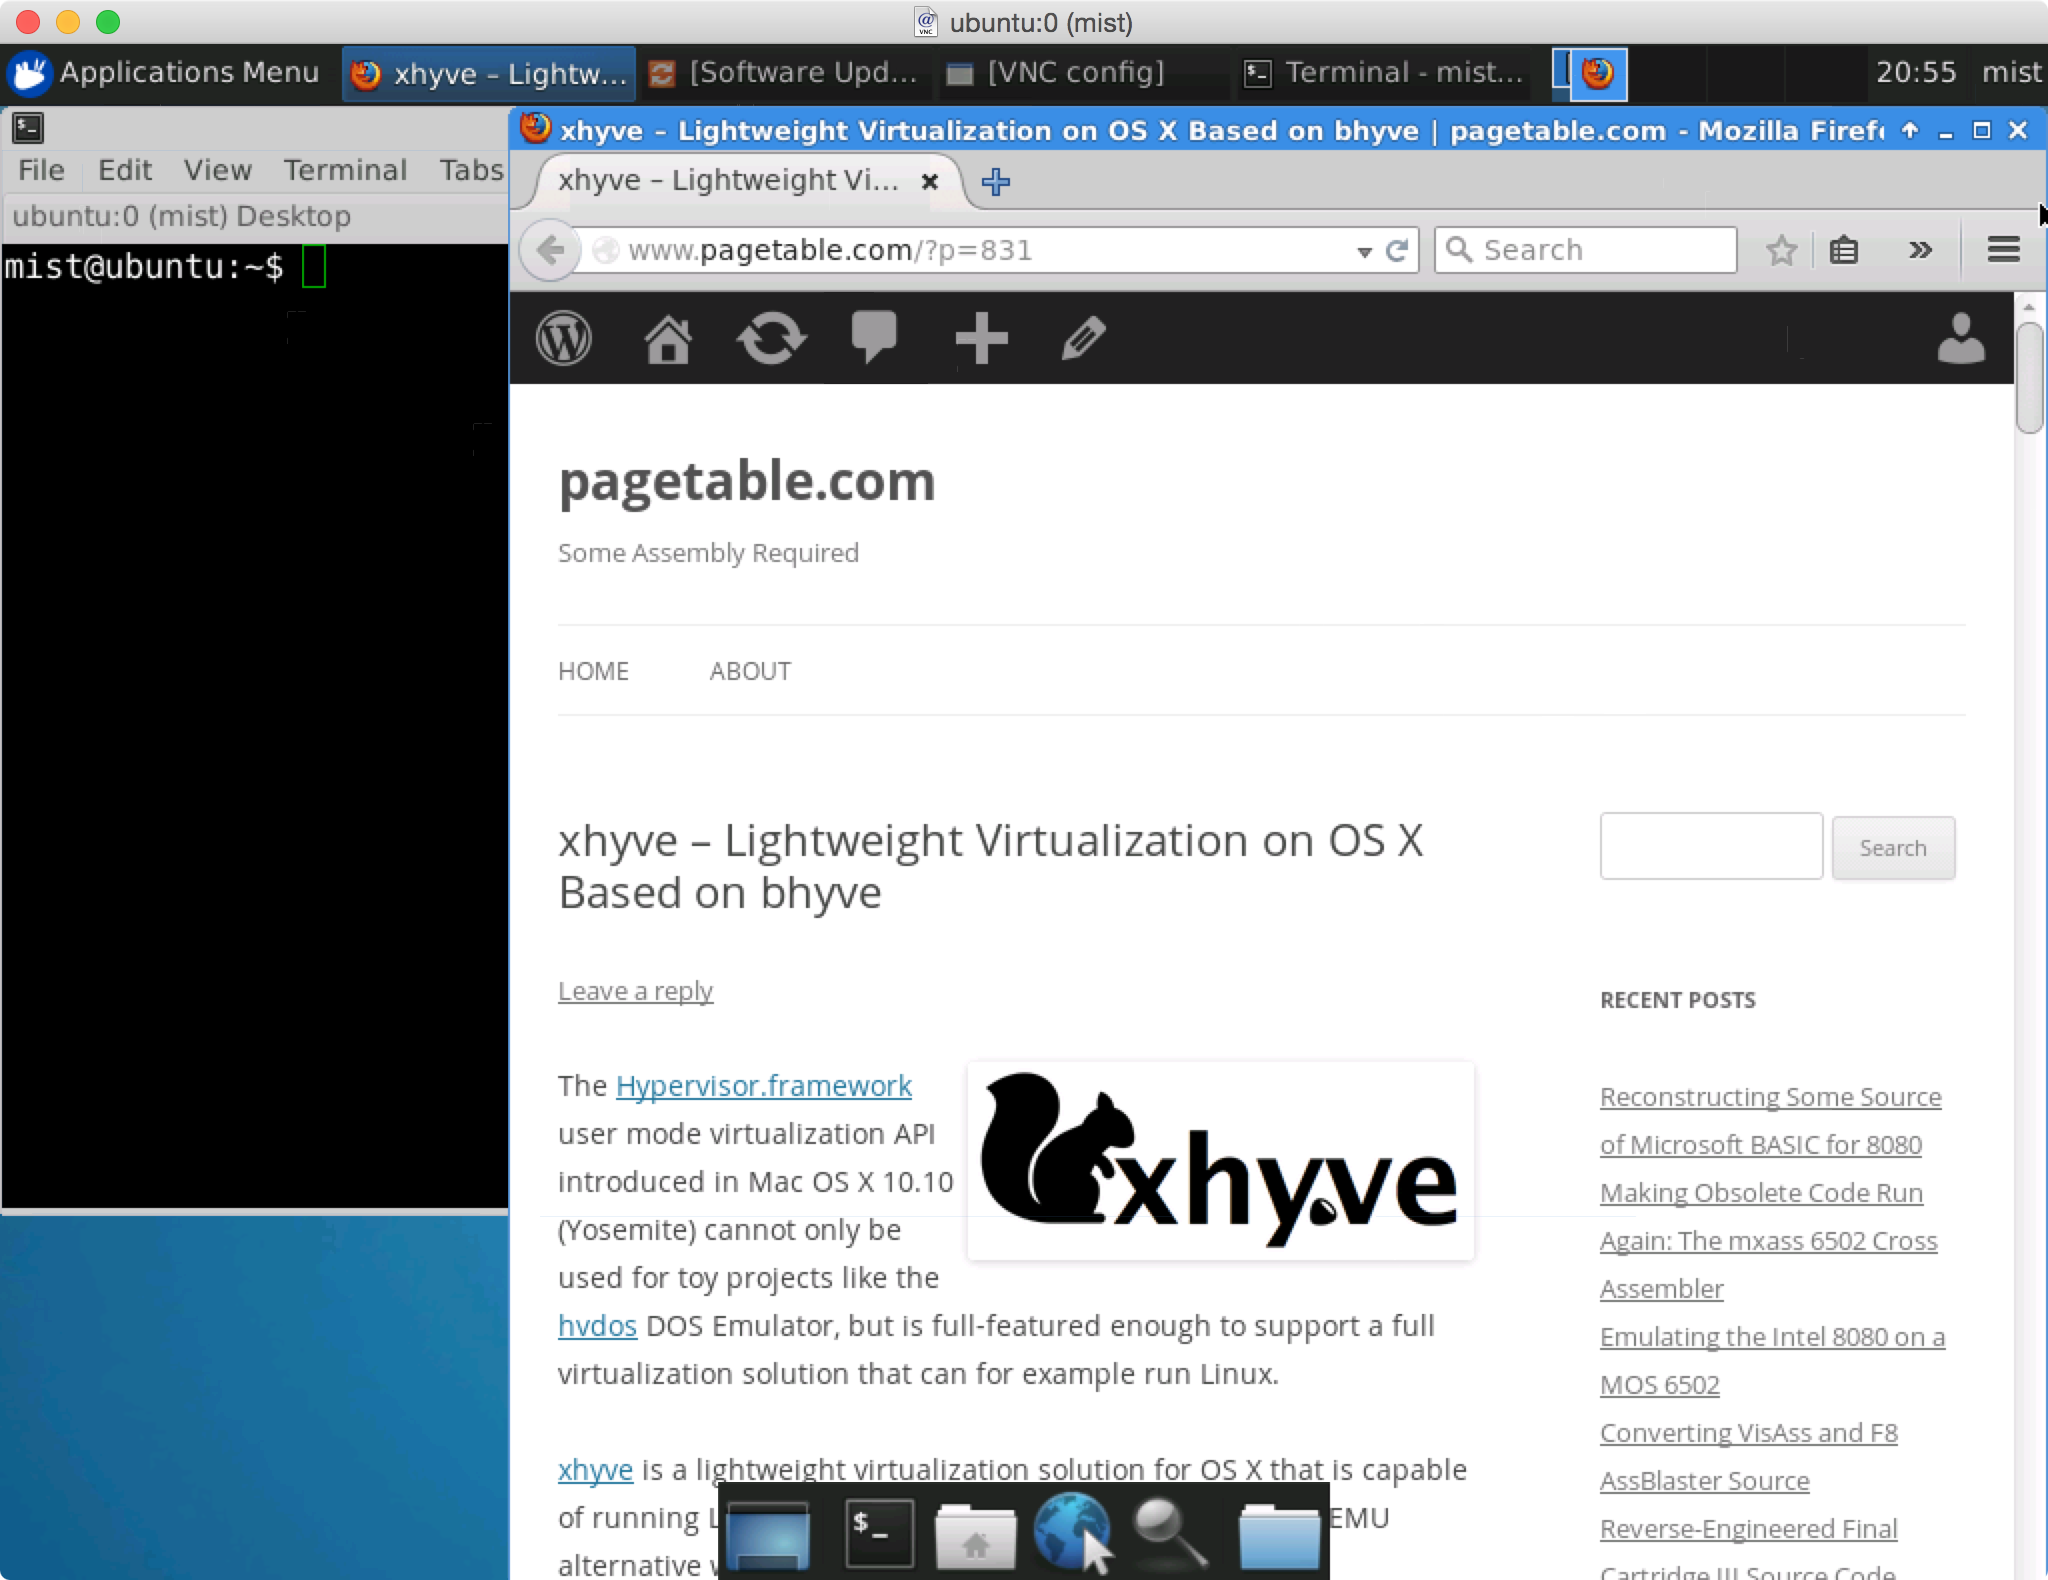 xhyve – Lightweight Virtualization on OS X Based on bhyve